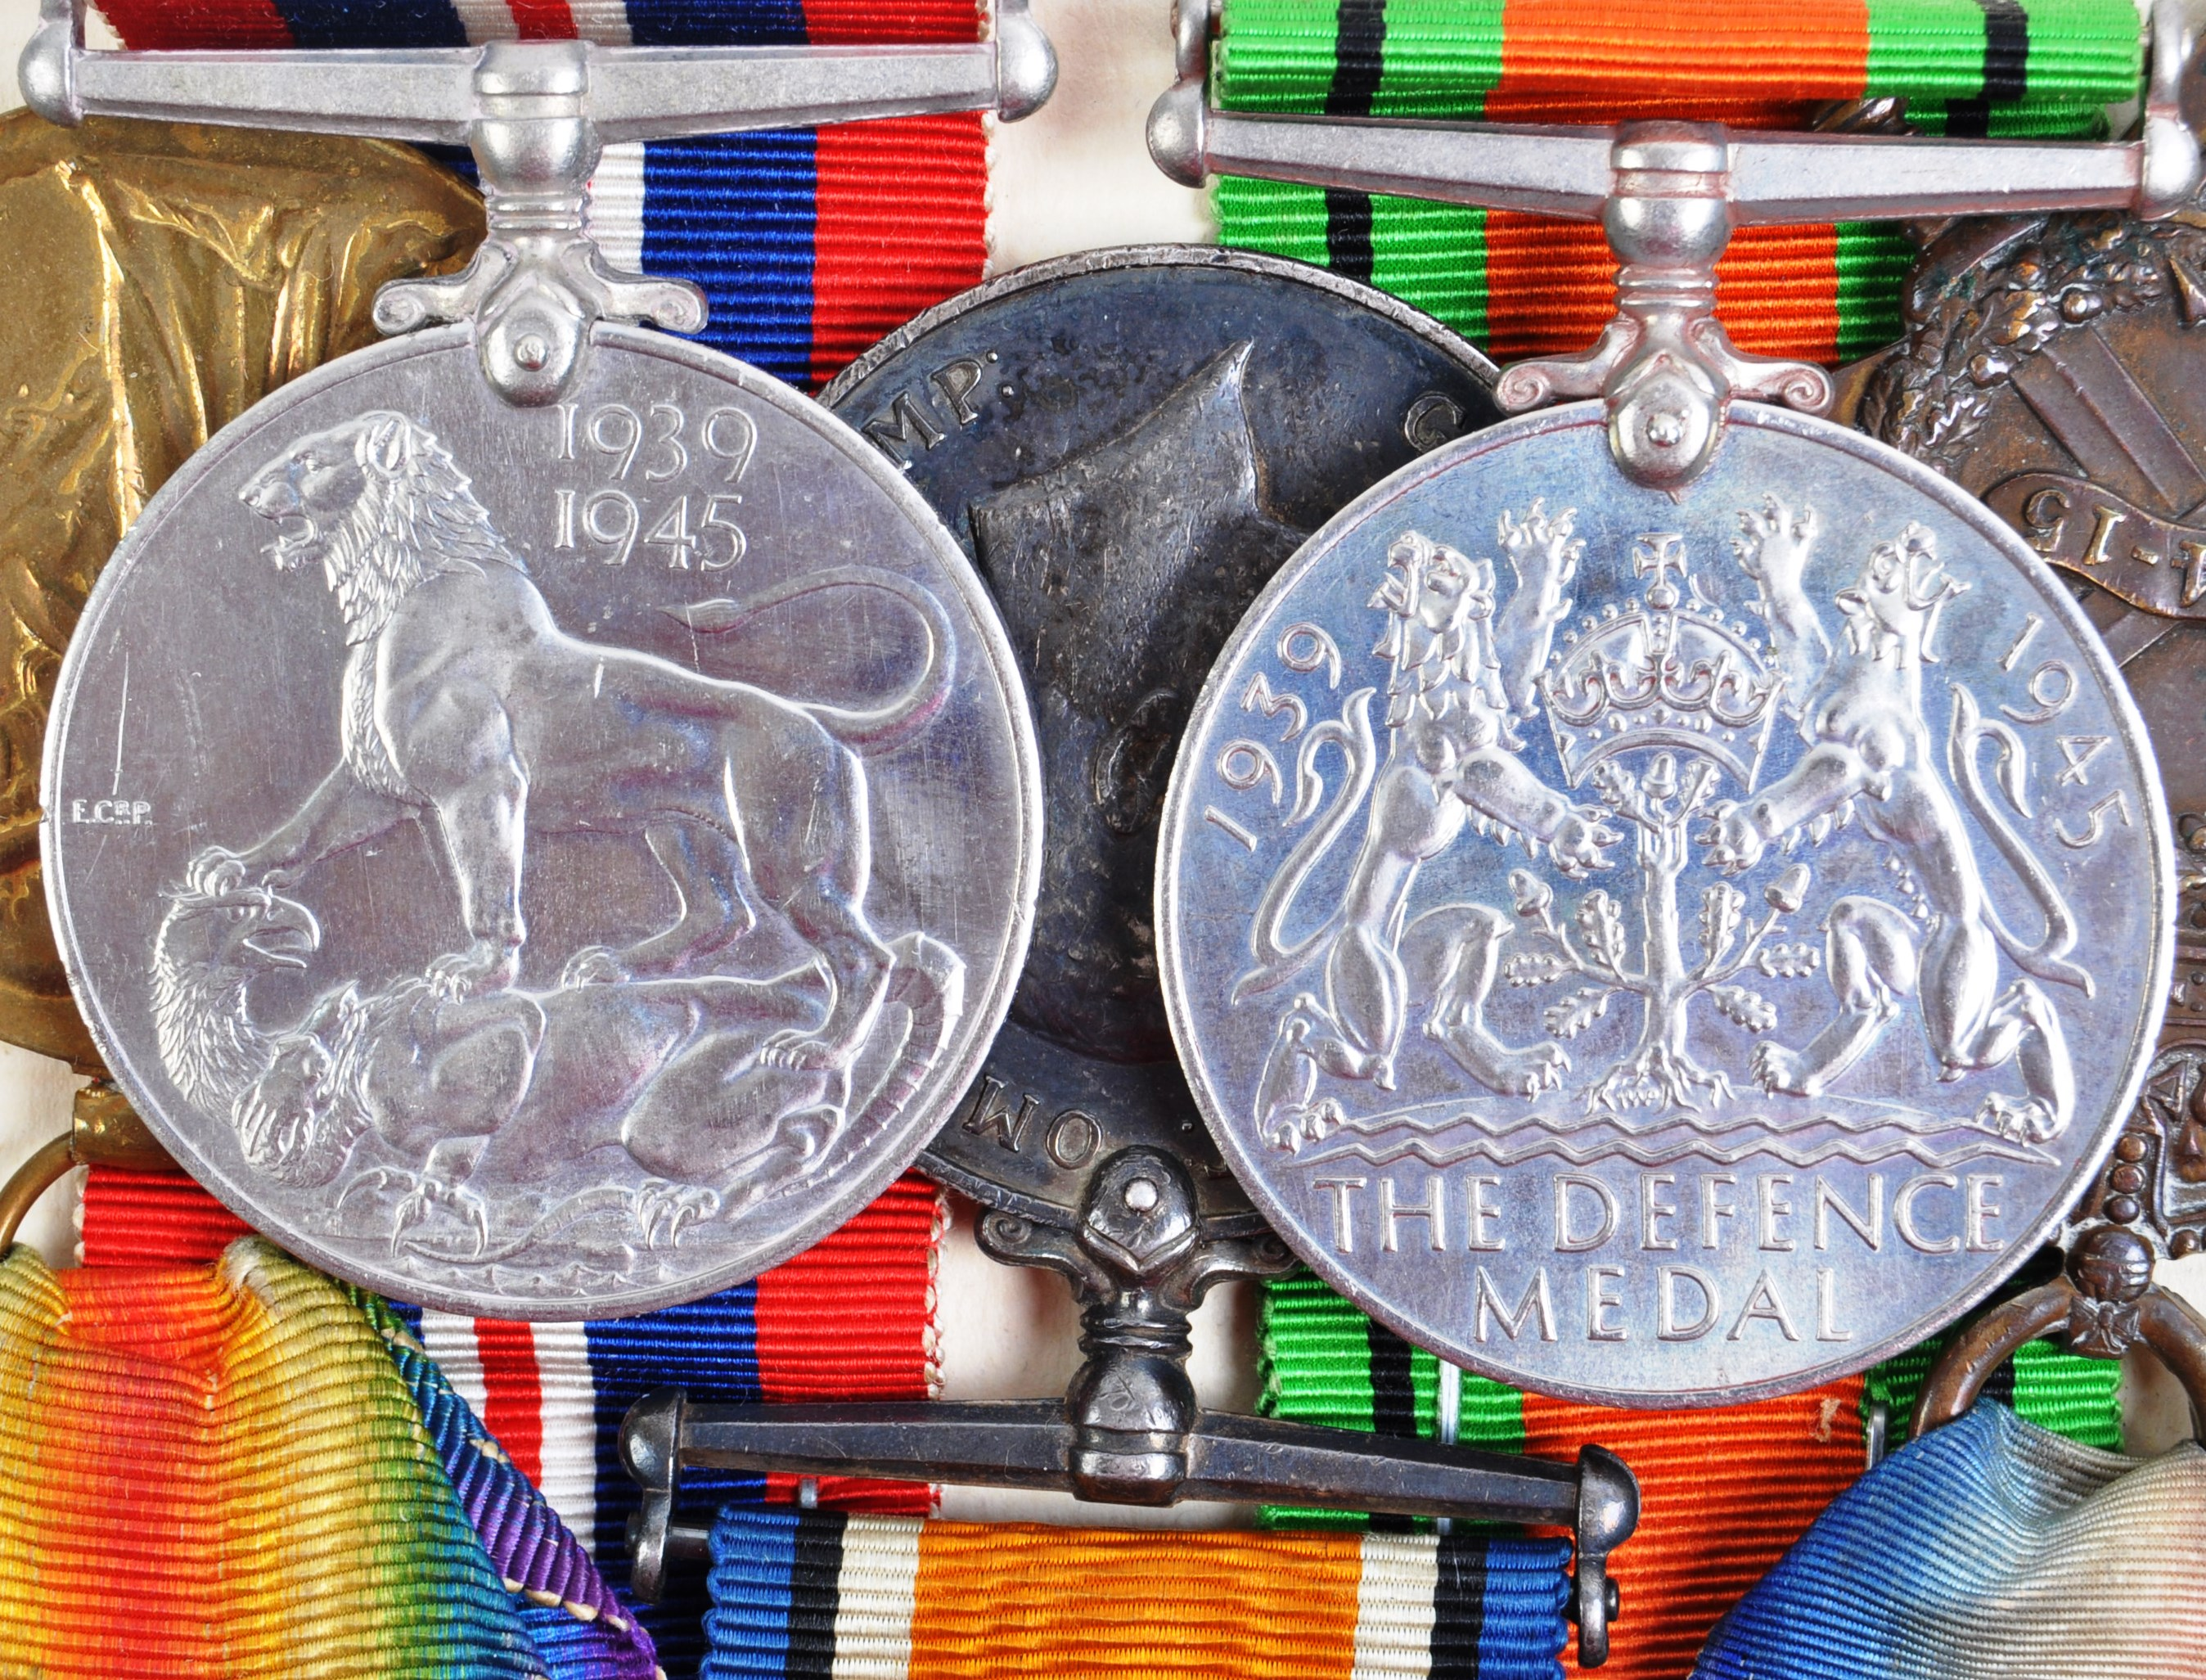 WWI & WWII SECOND WORLD WAR MEDAL GROUP - ROYAL NAVY - Image 5 of 5